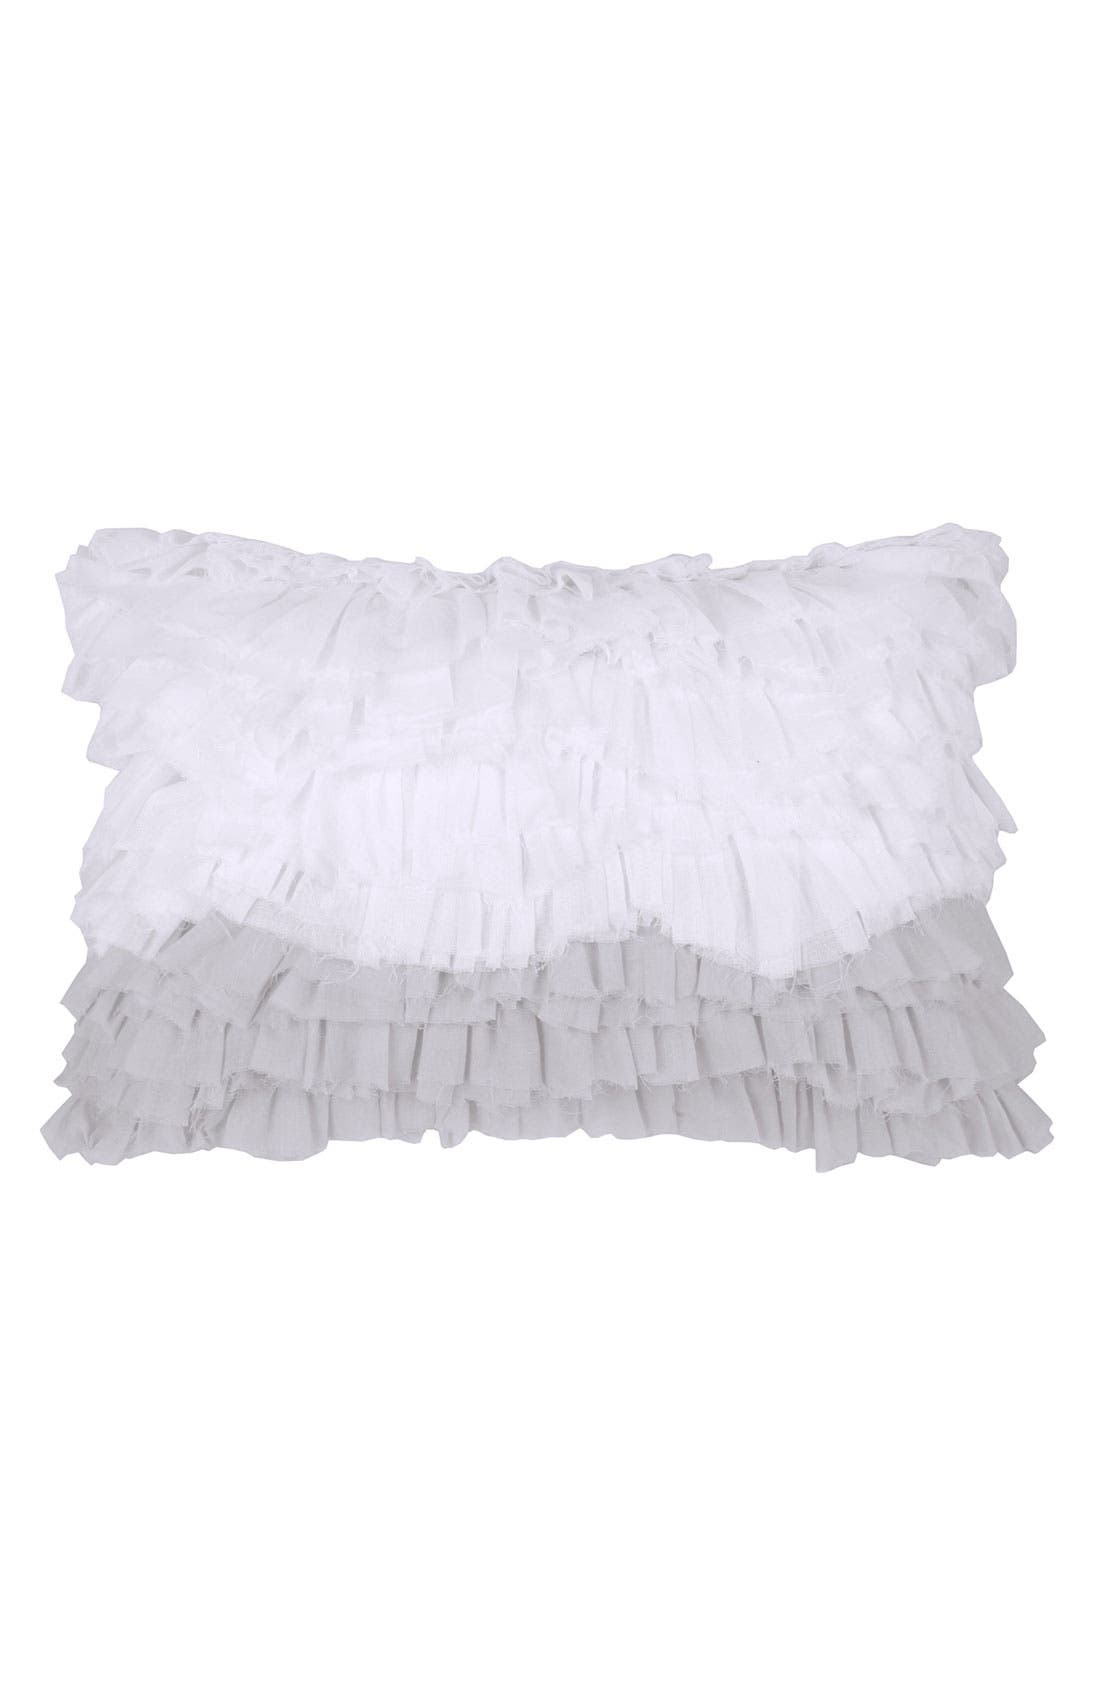 Main Image - Blissliving Home 'Opera' Pillow (Online Only)